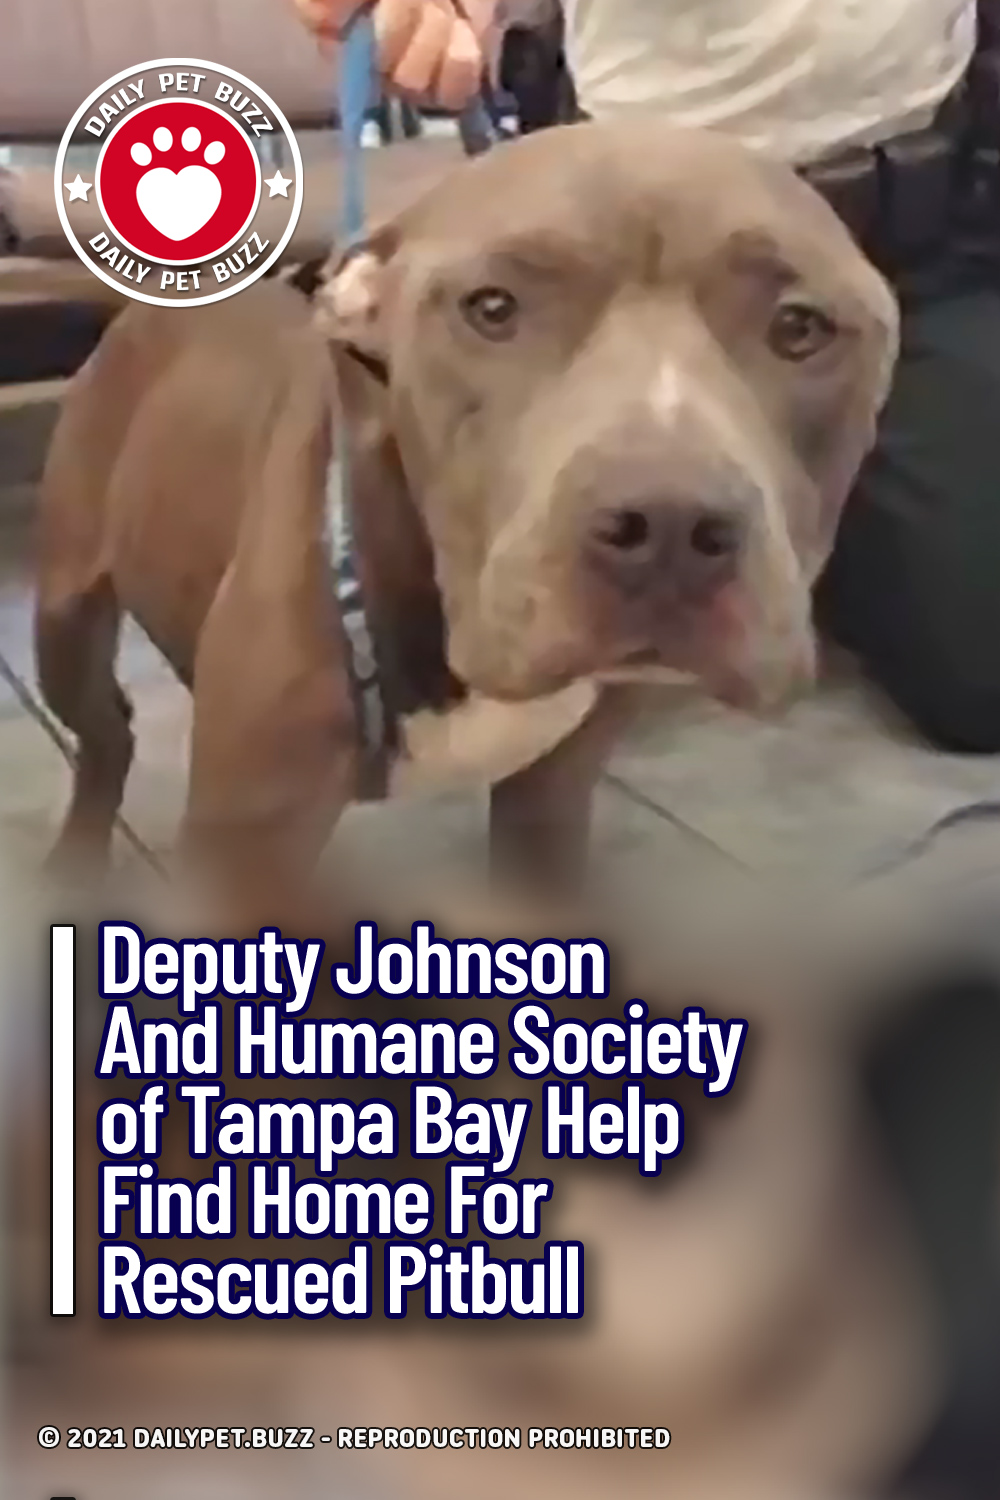 Deputy Johnson And Humane Society of Tampa Bay Help Find Home For Rescued Pitbull